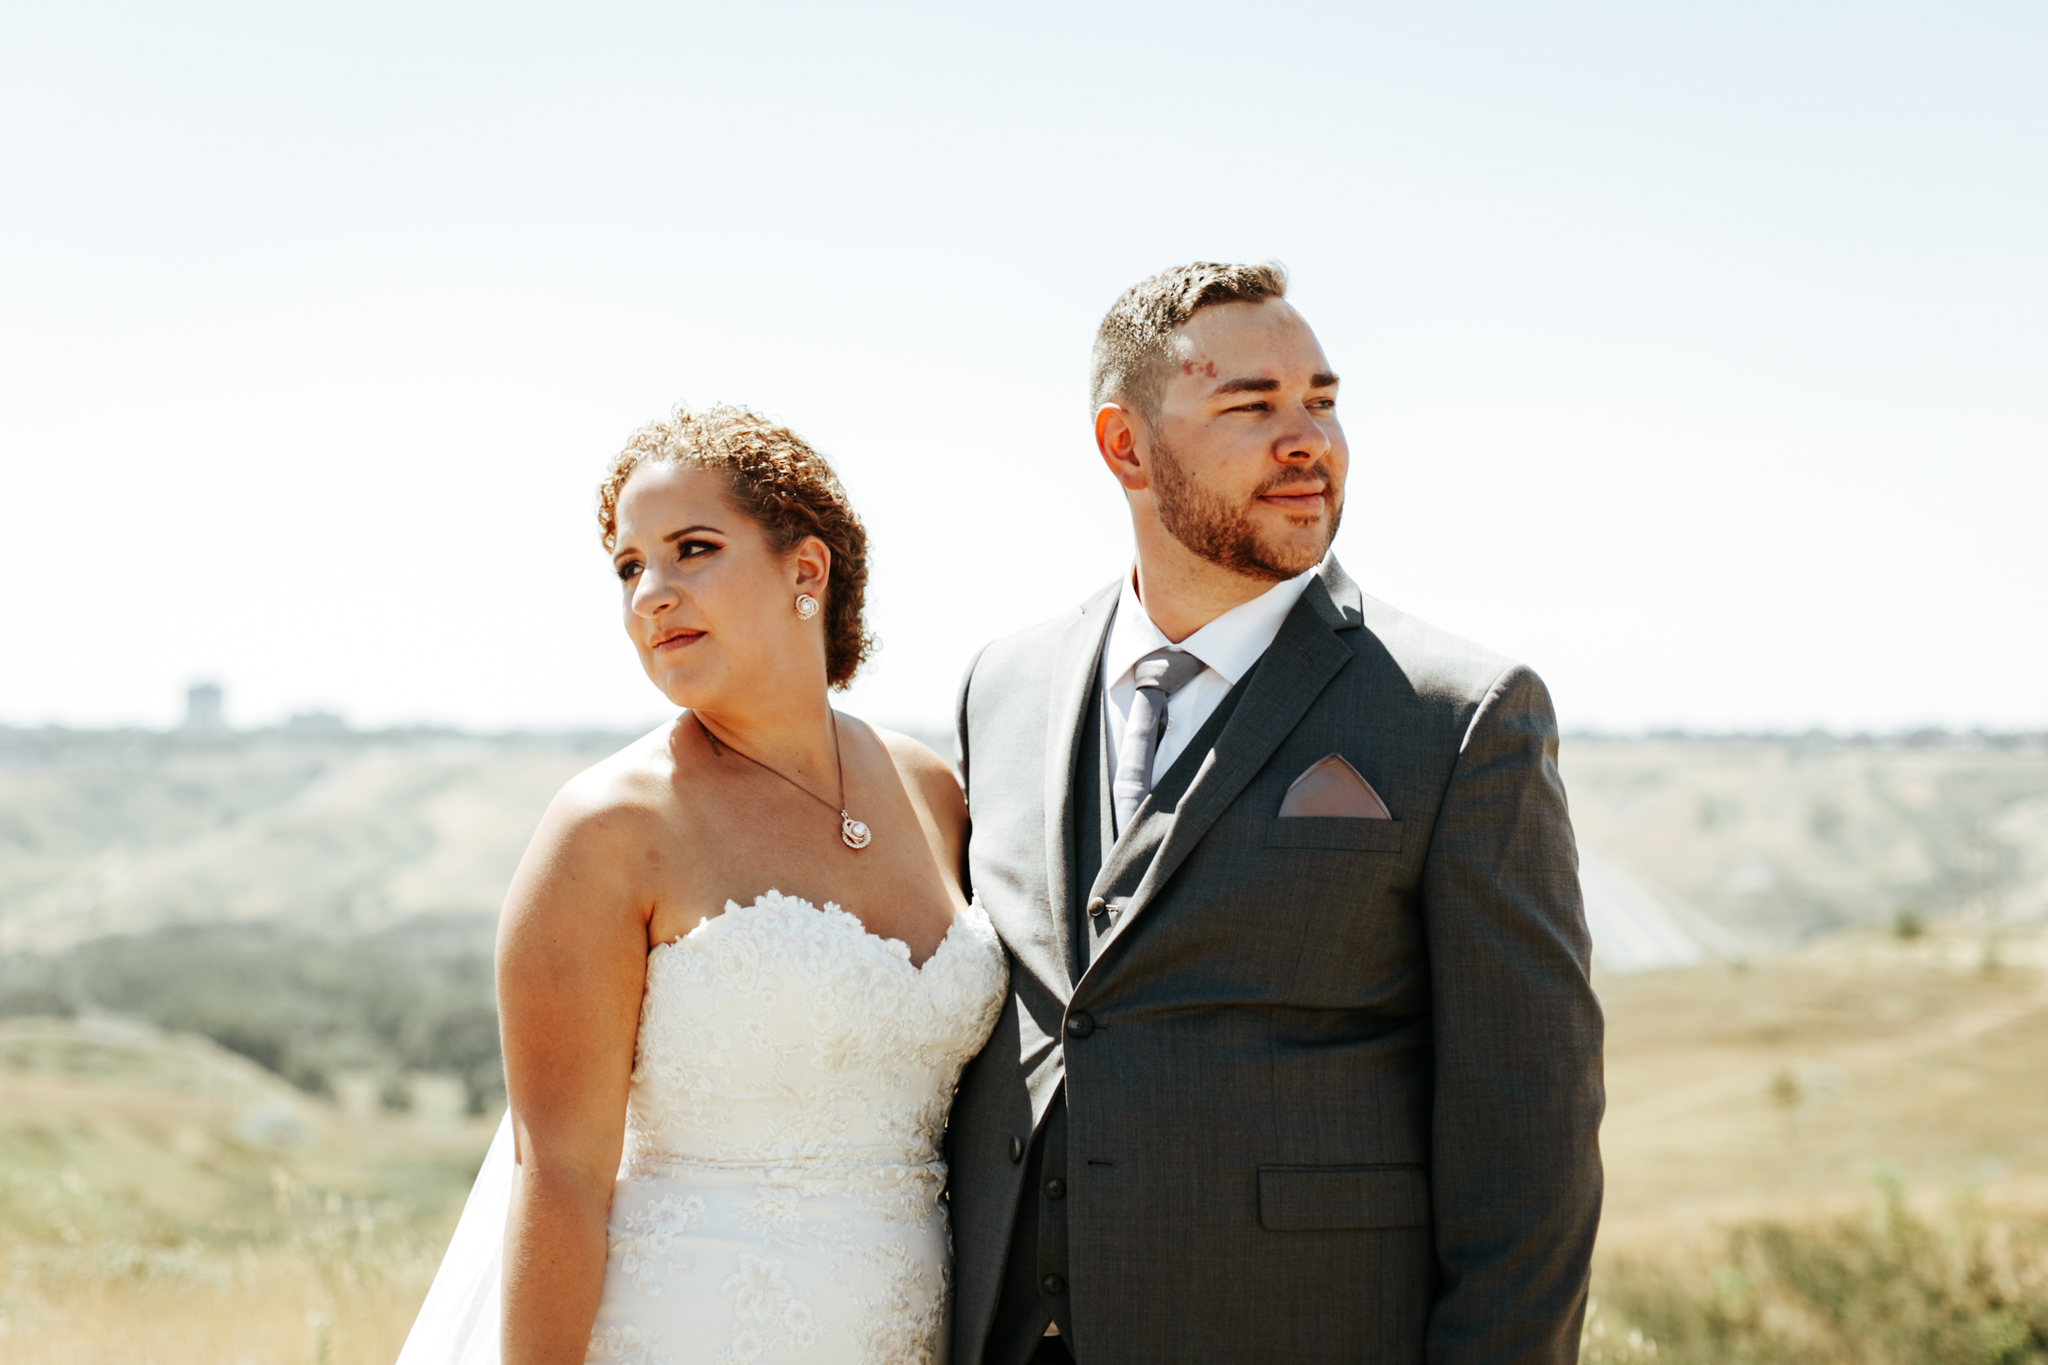 lethbridge-wedding-photographer-love-and-be-loved-photography-trent-danielle-galt-reception-picture-image-photo-96.jpg